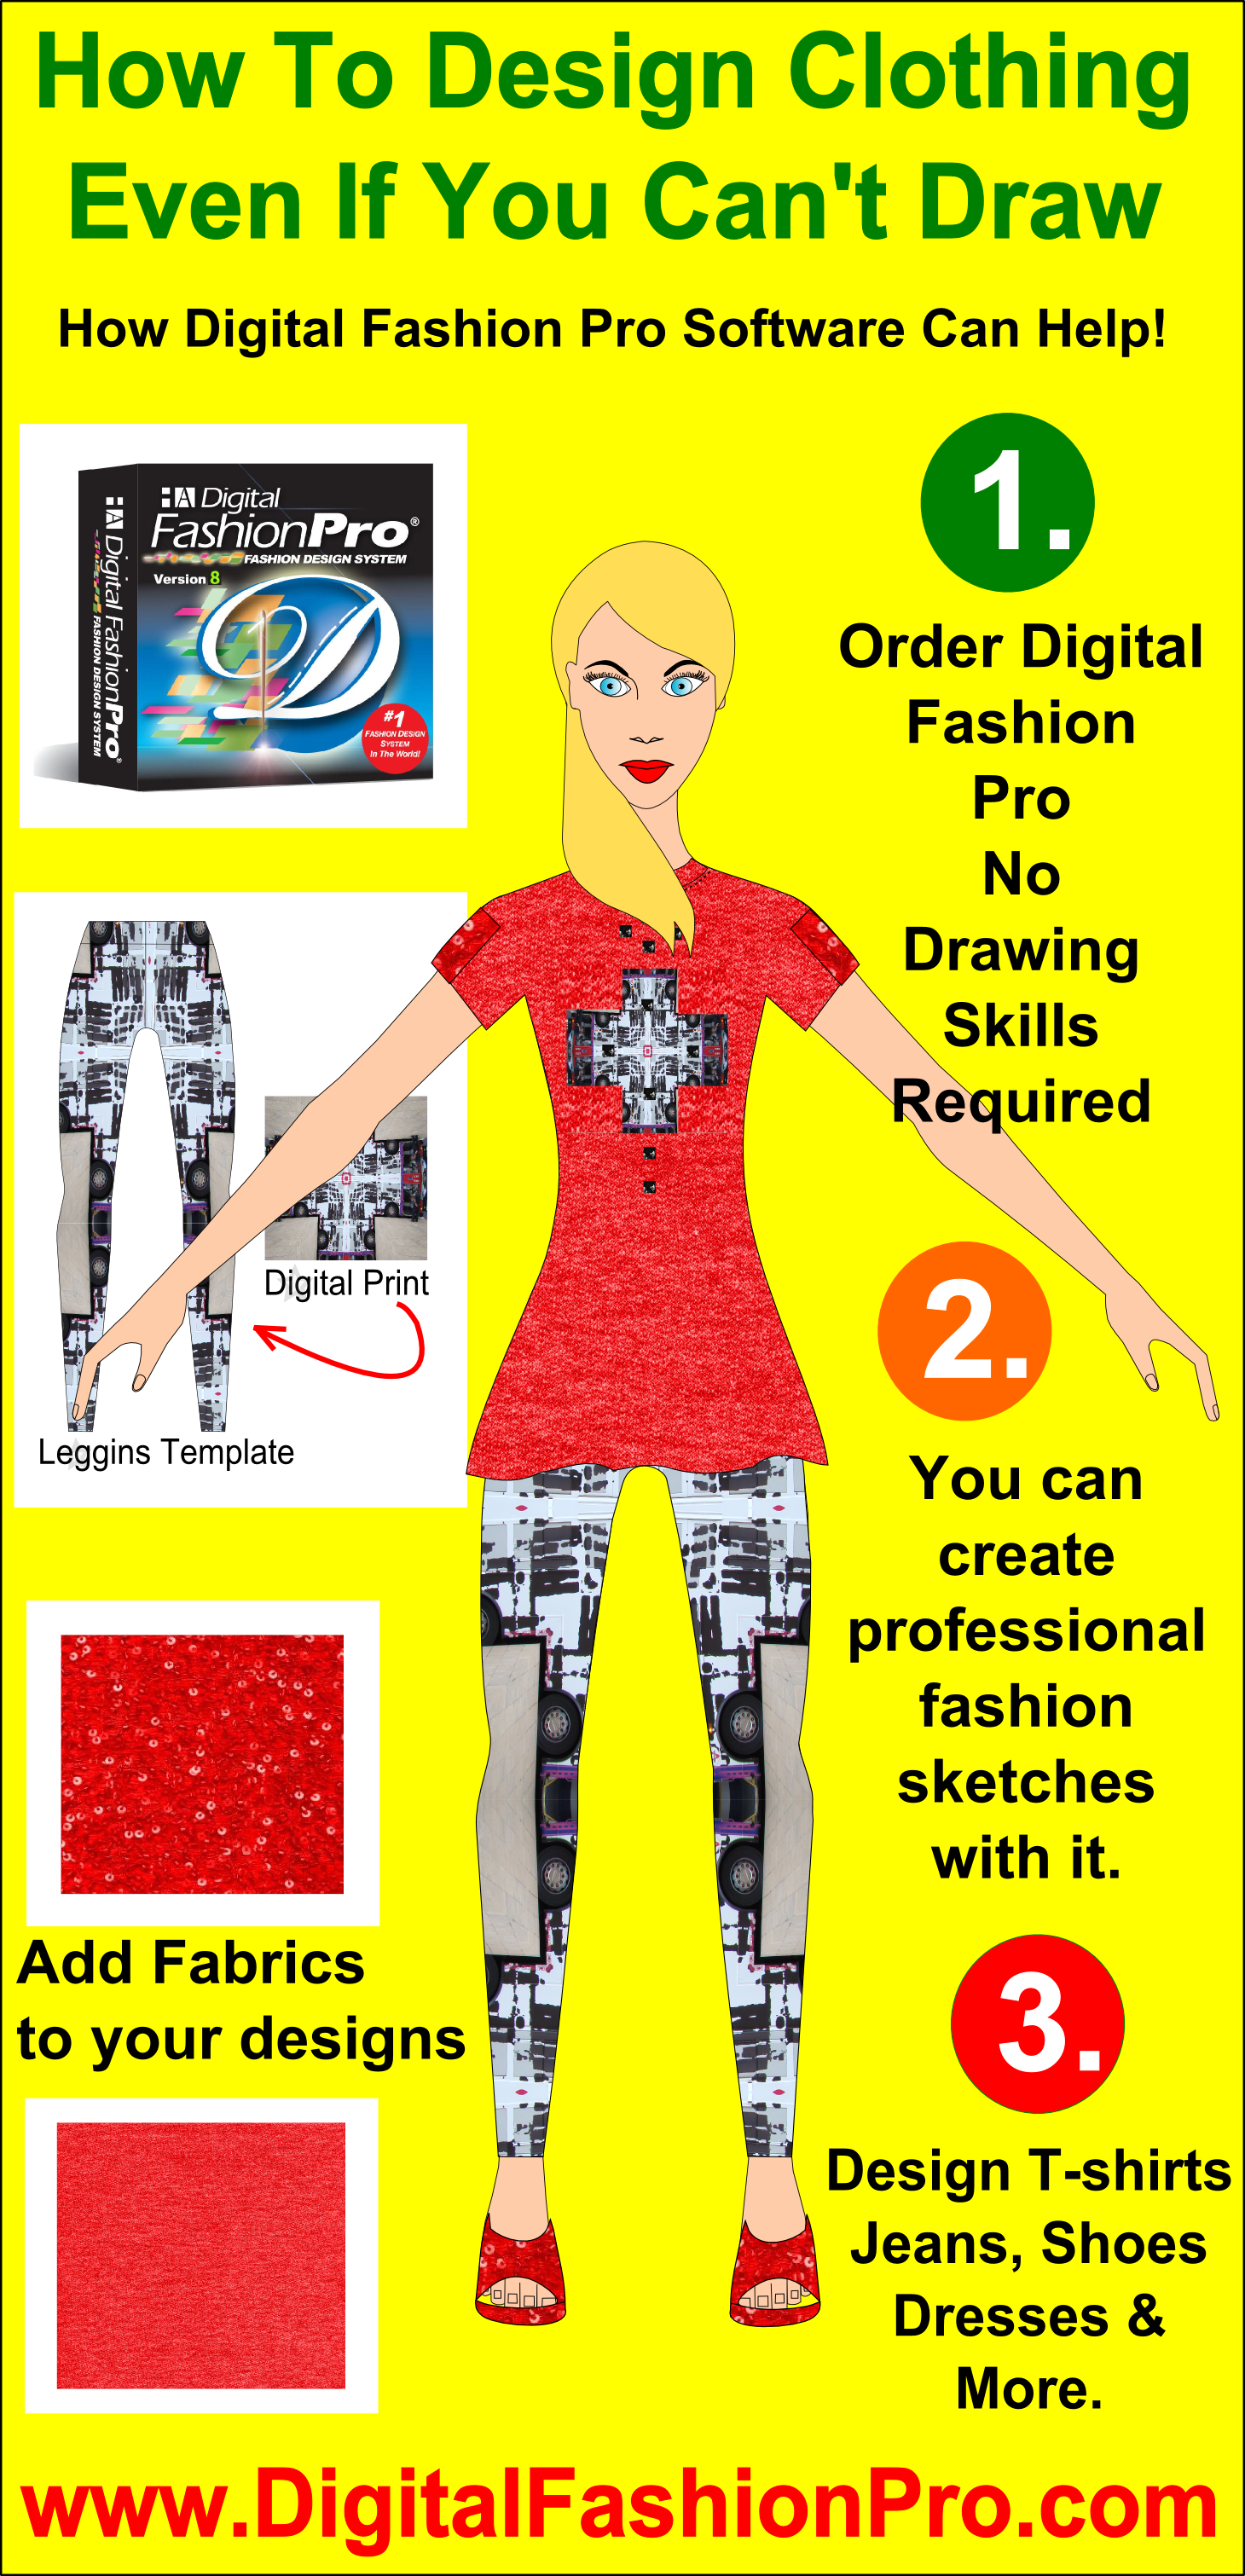 What are some of the best clothing design software applications?